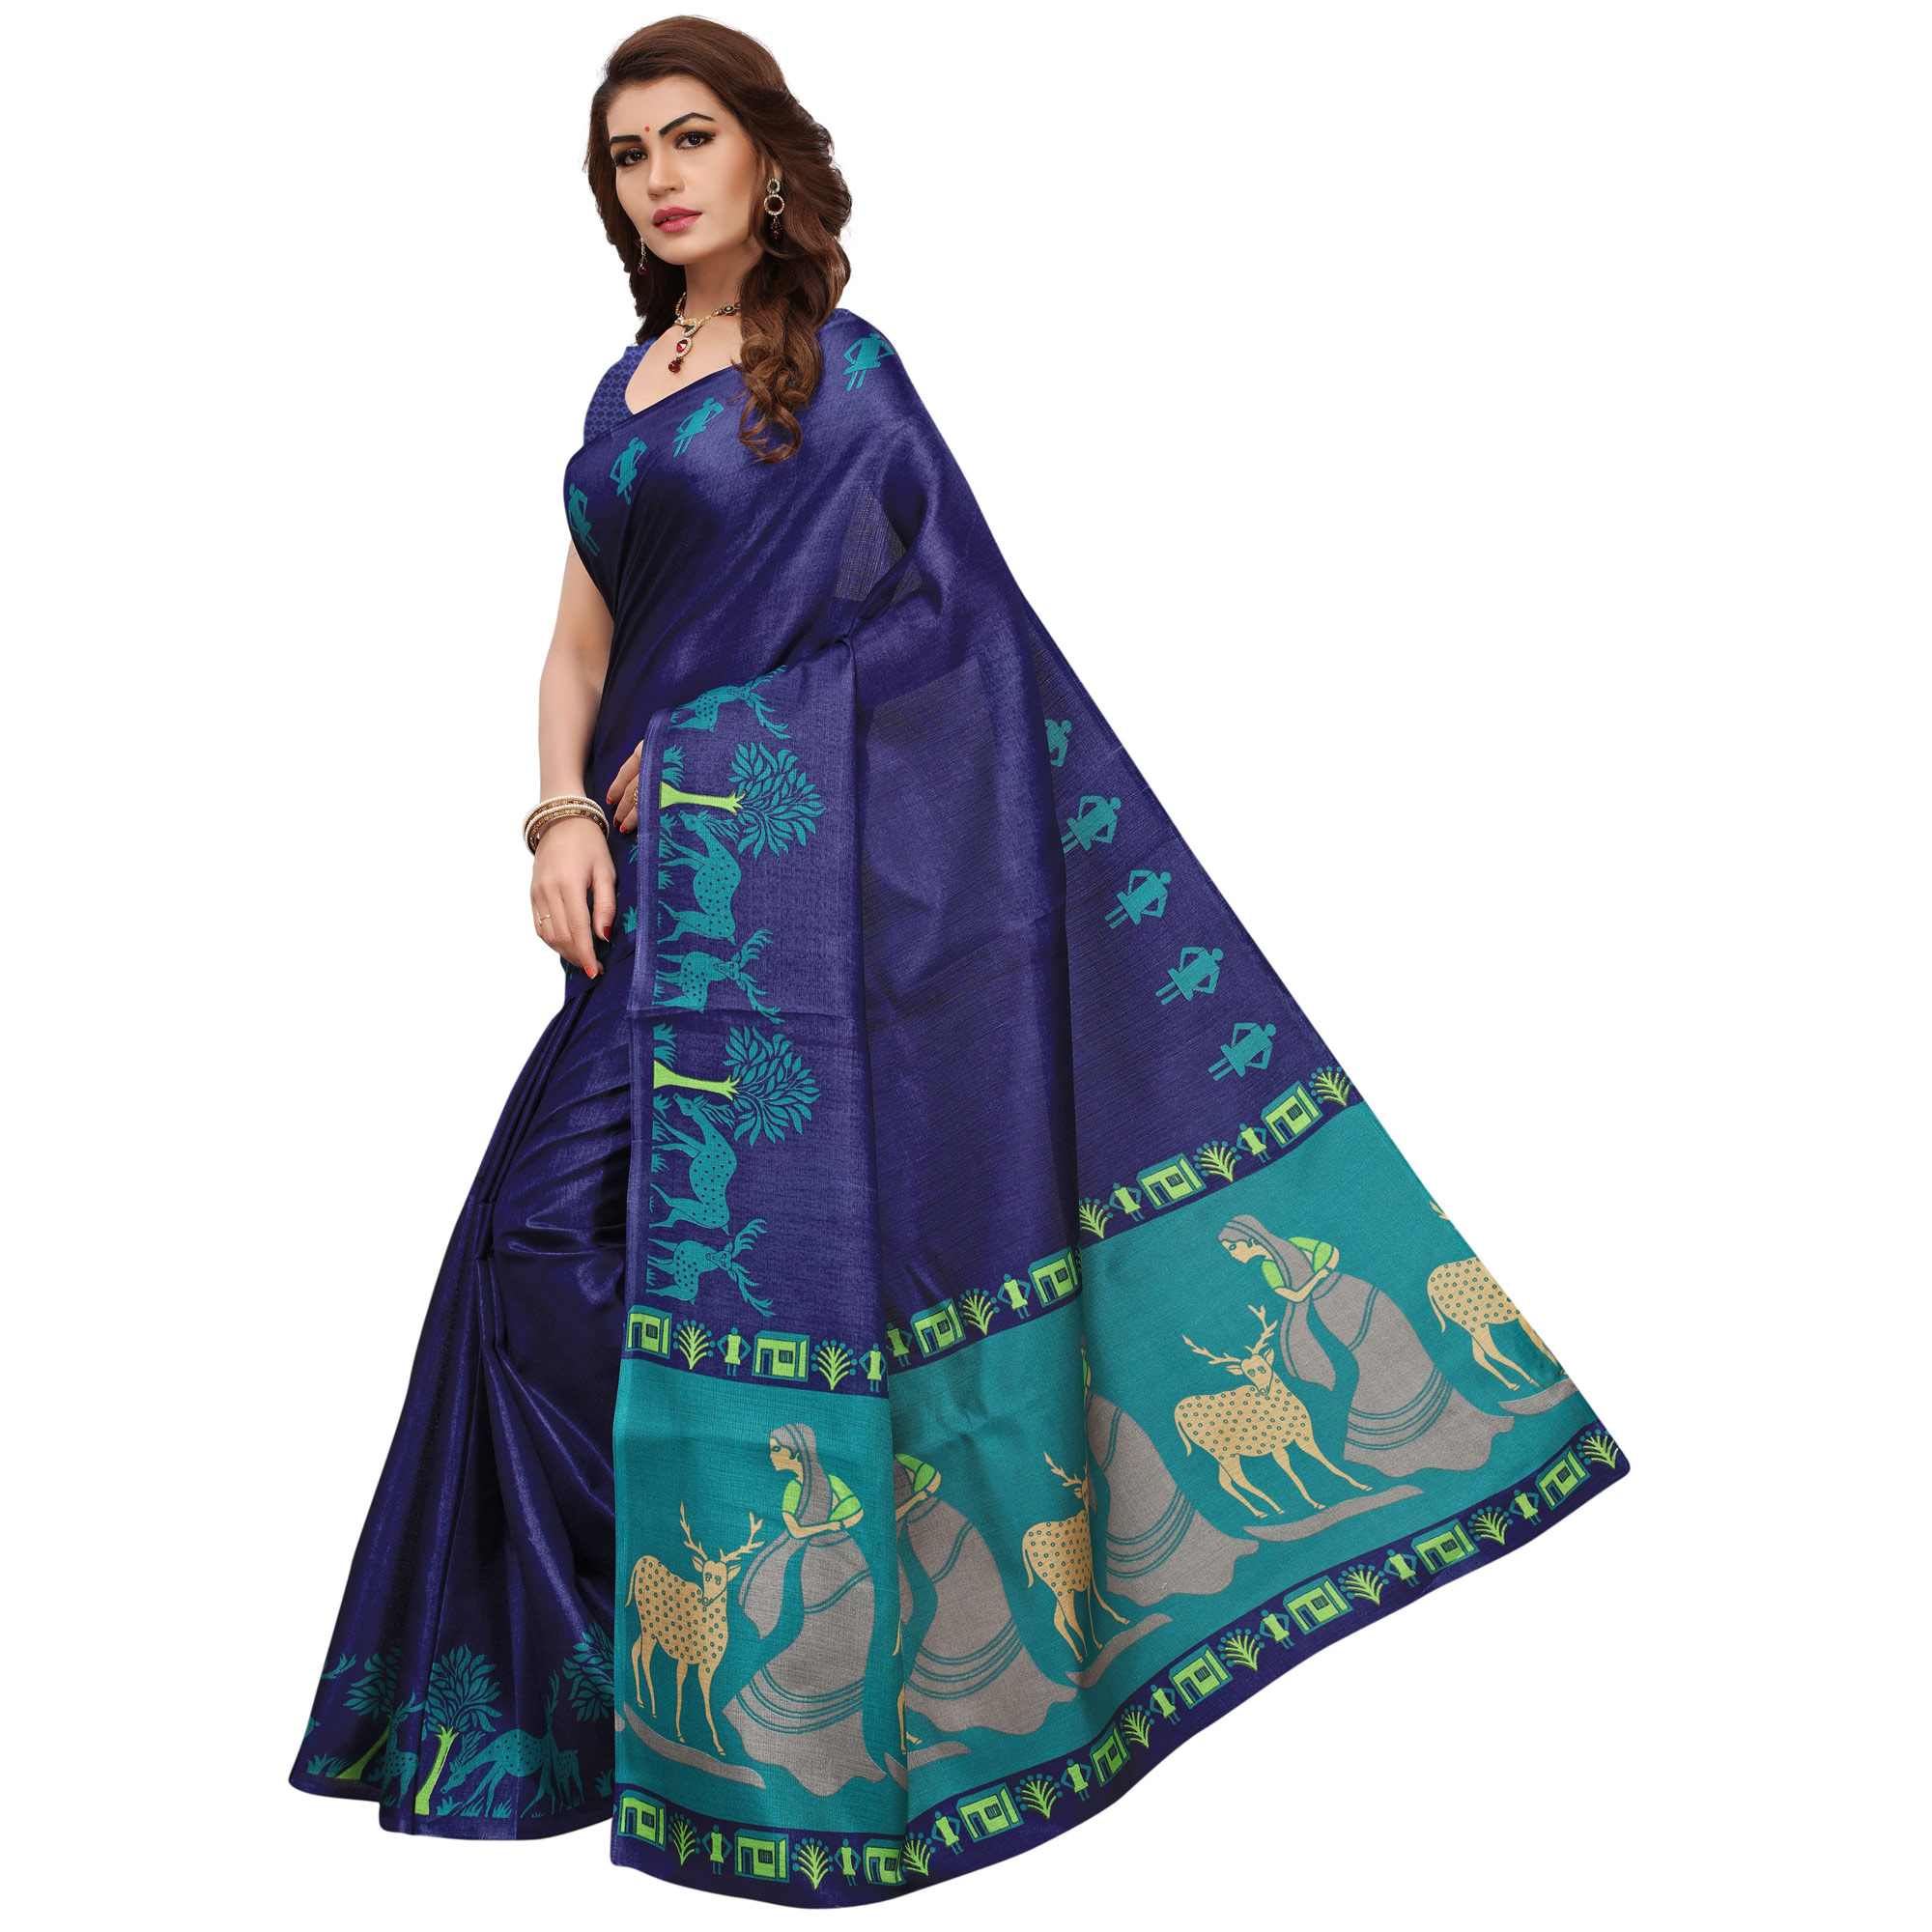 Desiring Navy Blue Colored Printed Festive Wear Khadi Silk Saree